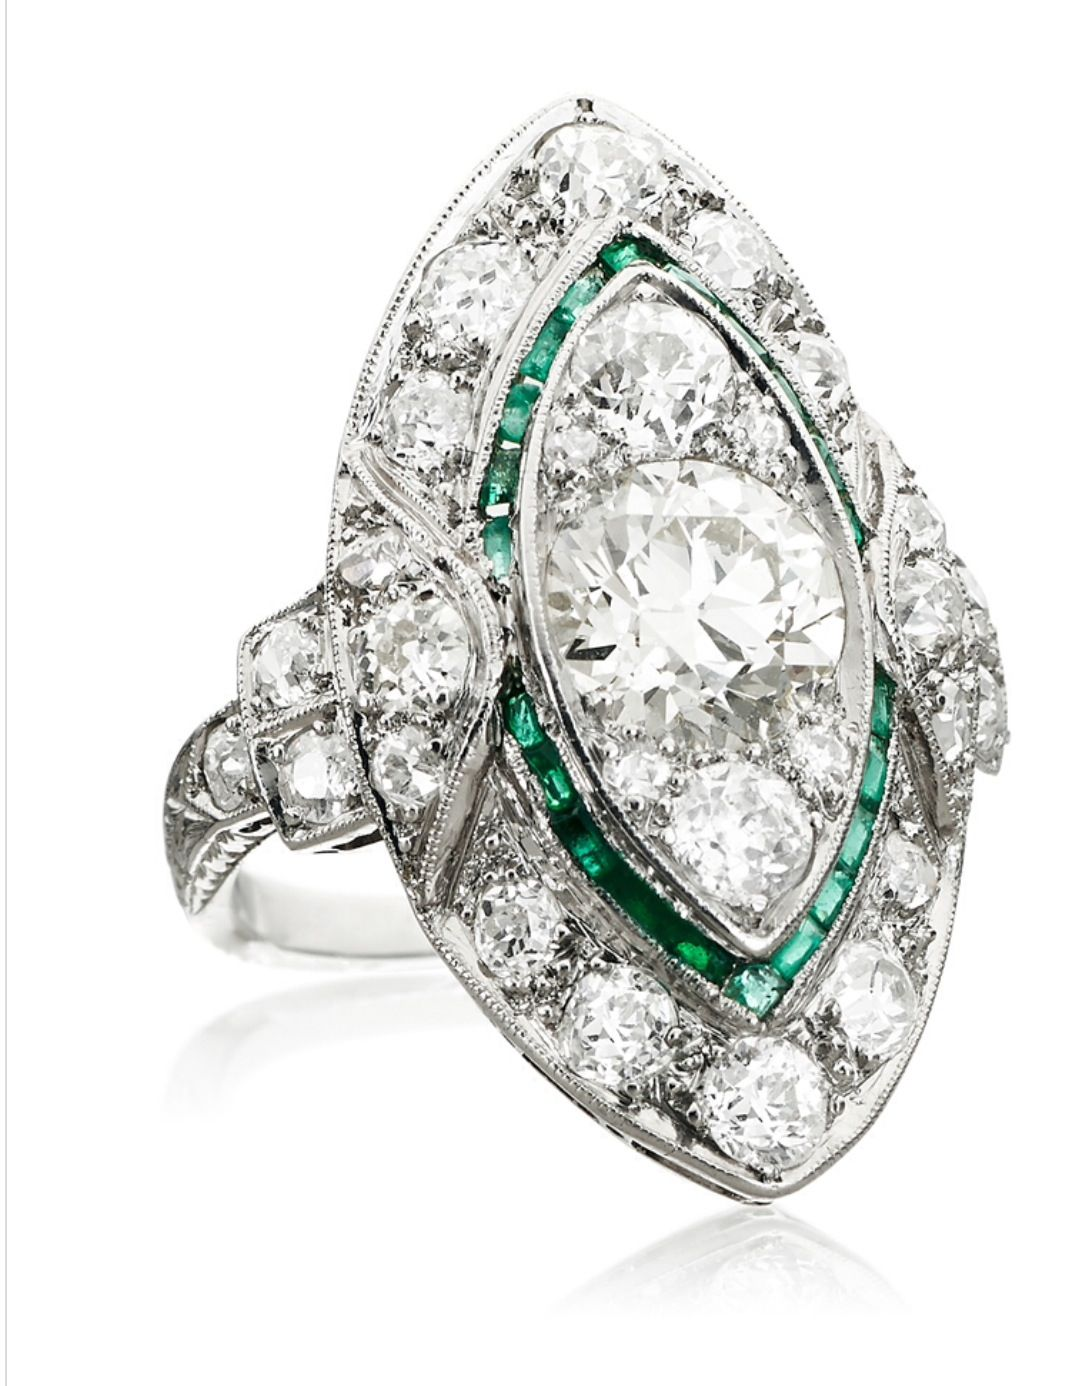 Unique and unbelievably gorgeous #estate #jewelry